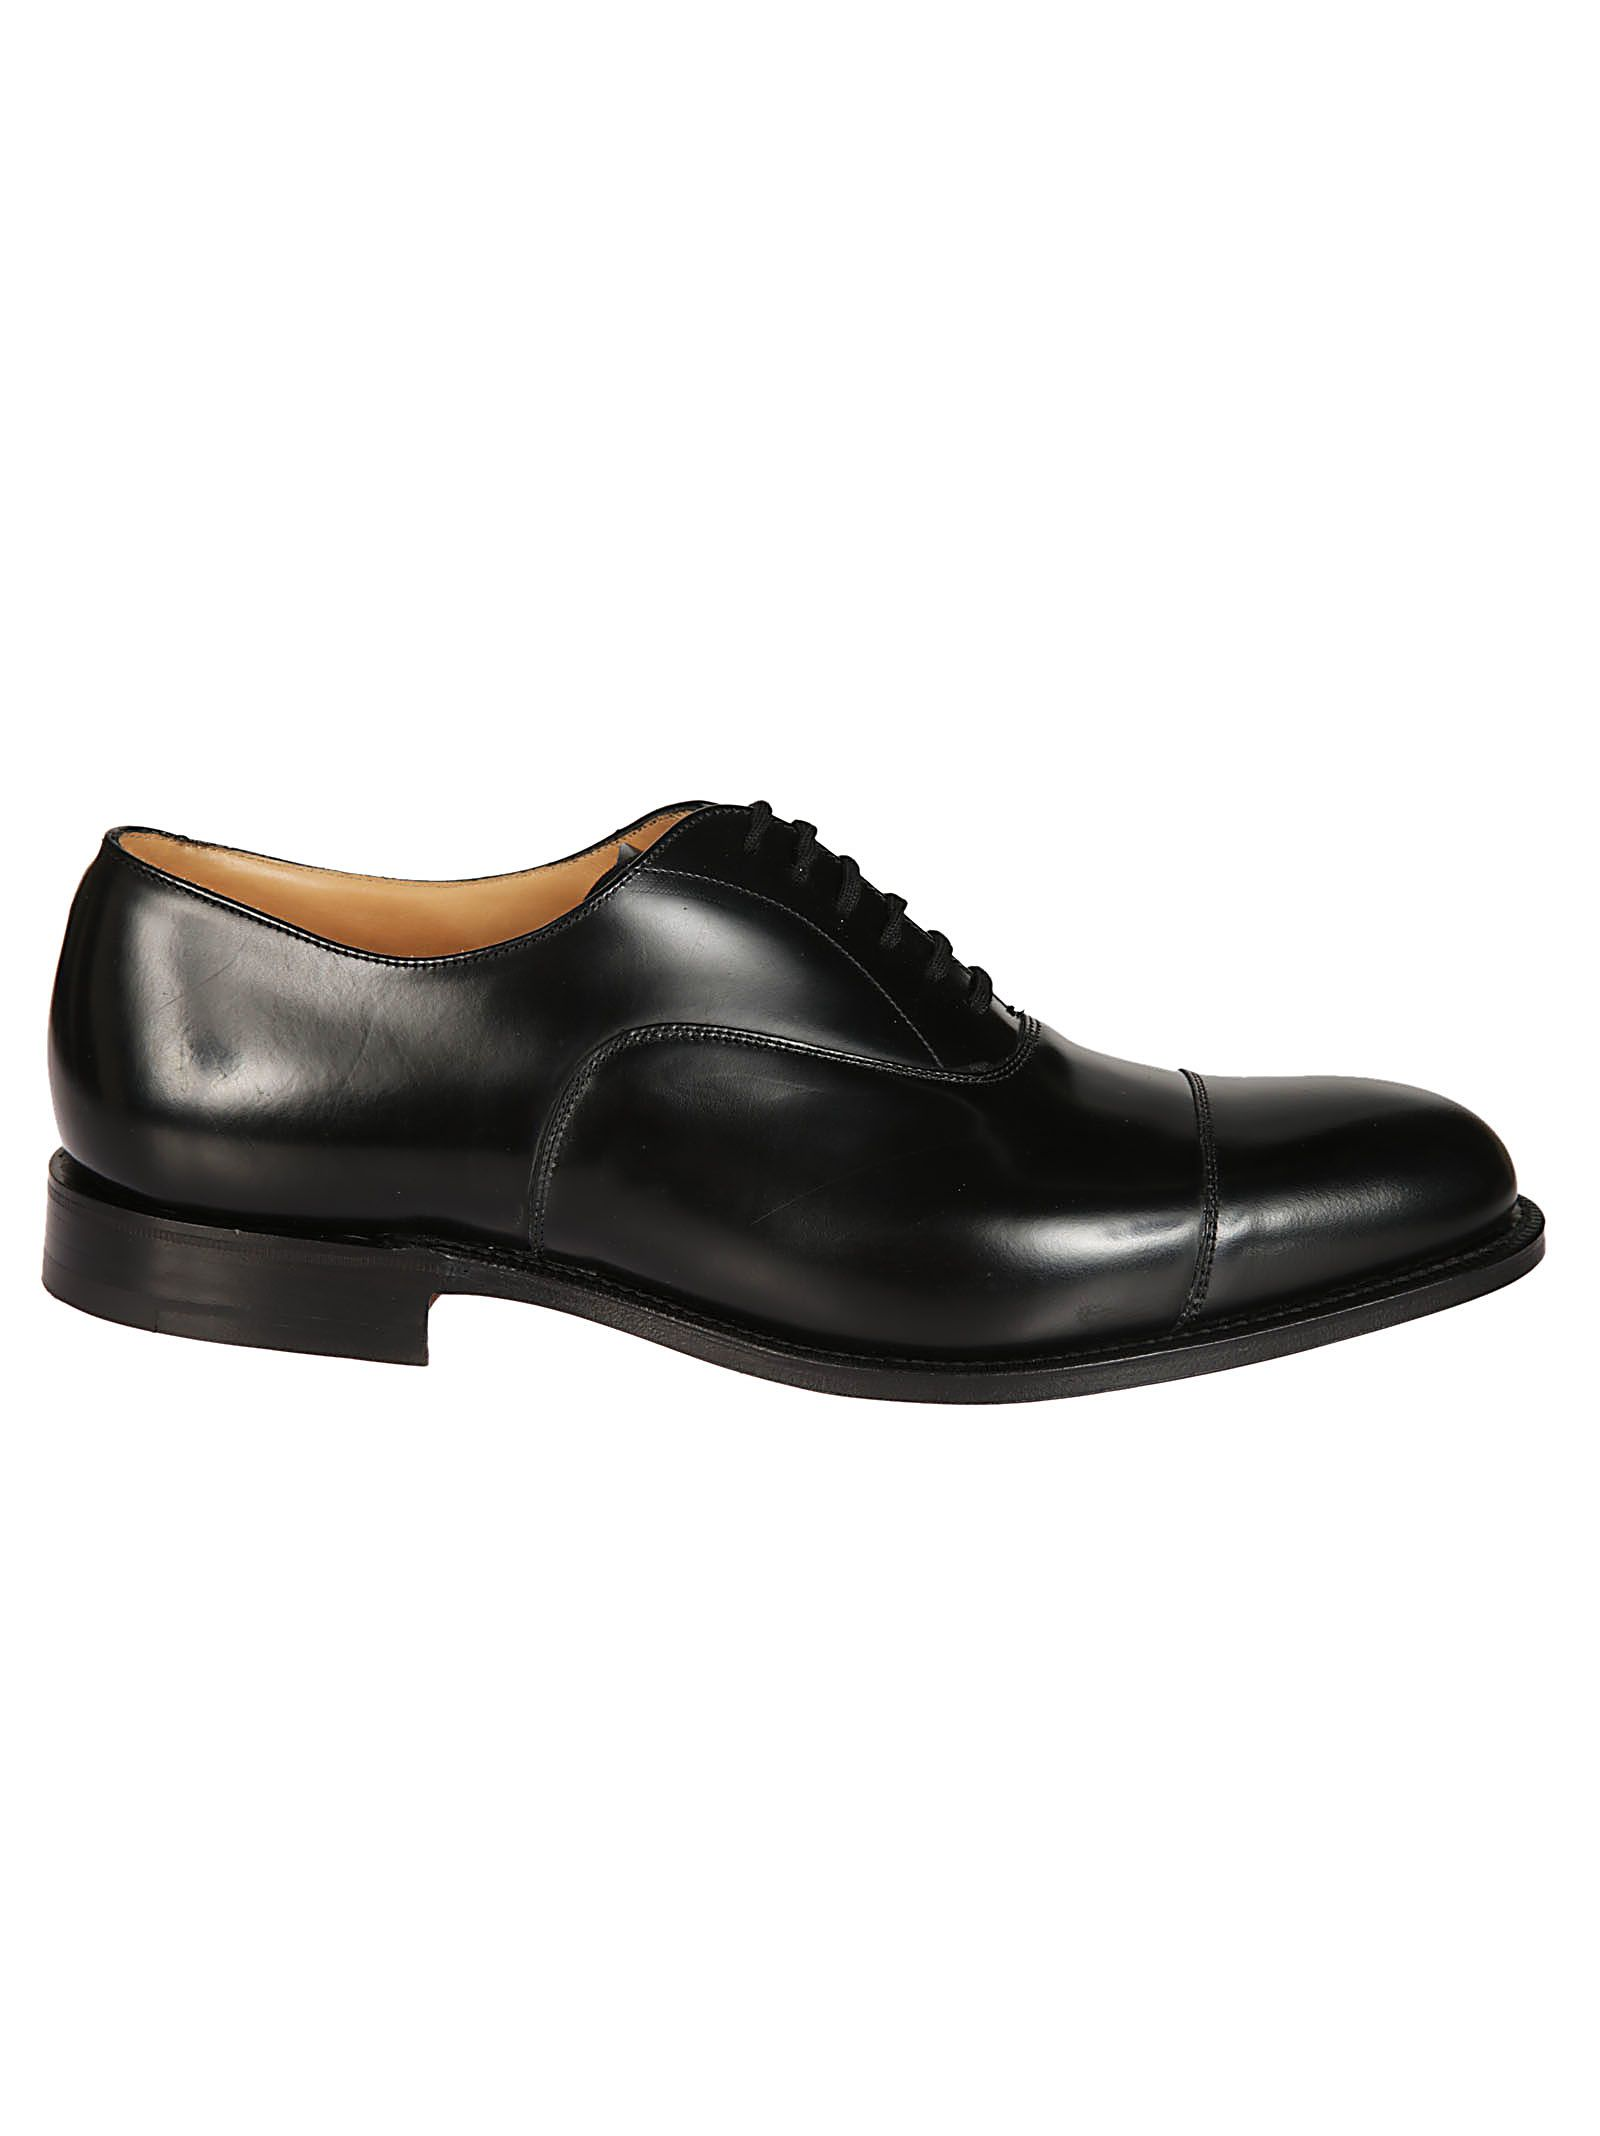 Church's Dubai Lace-up Shoes